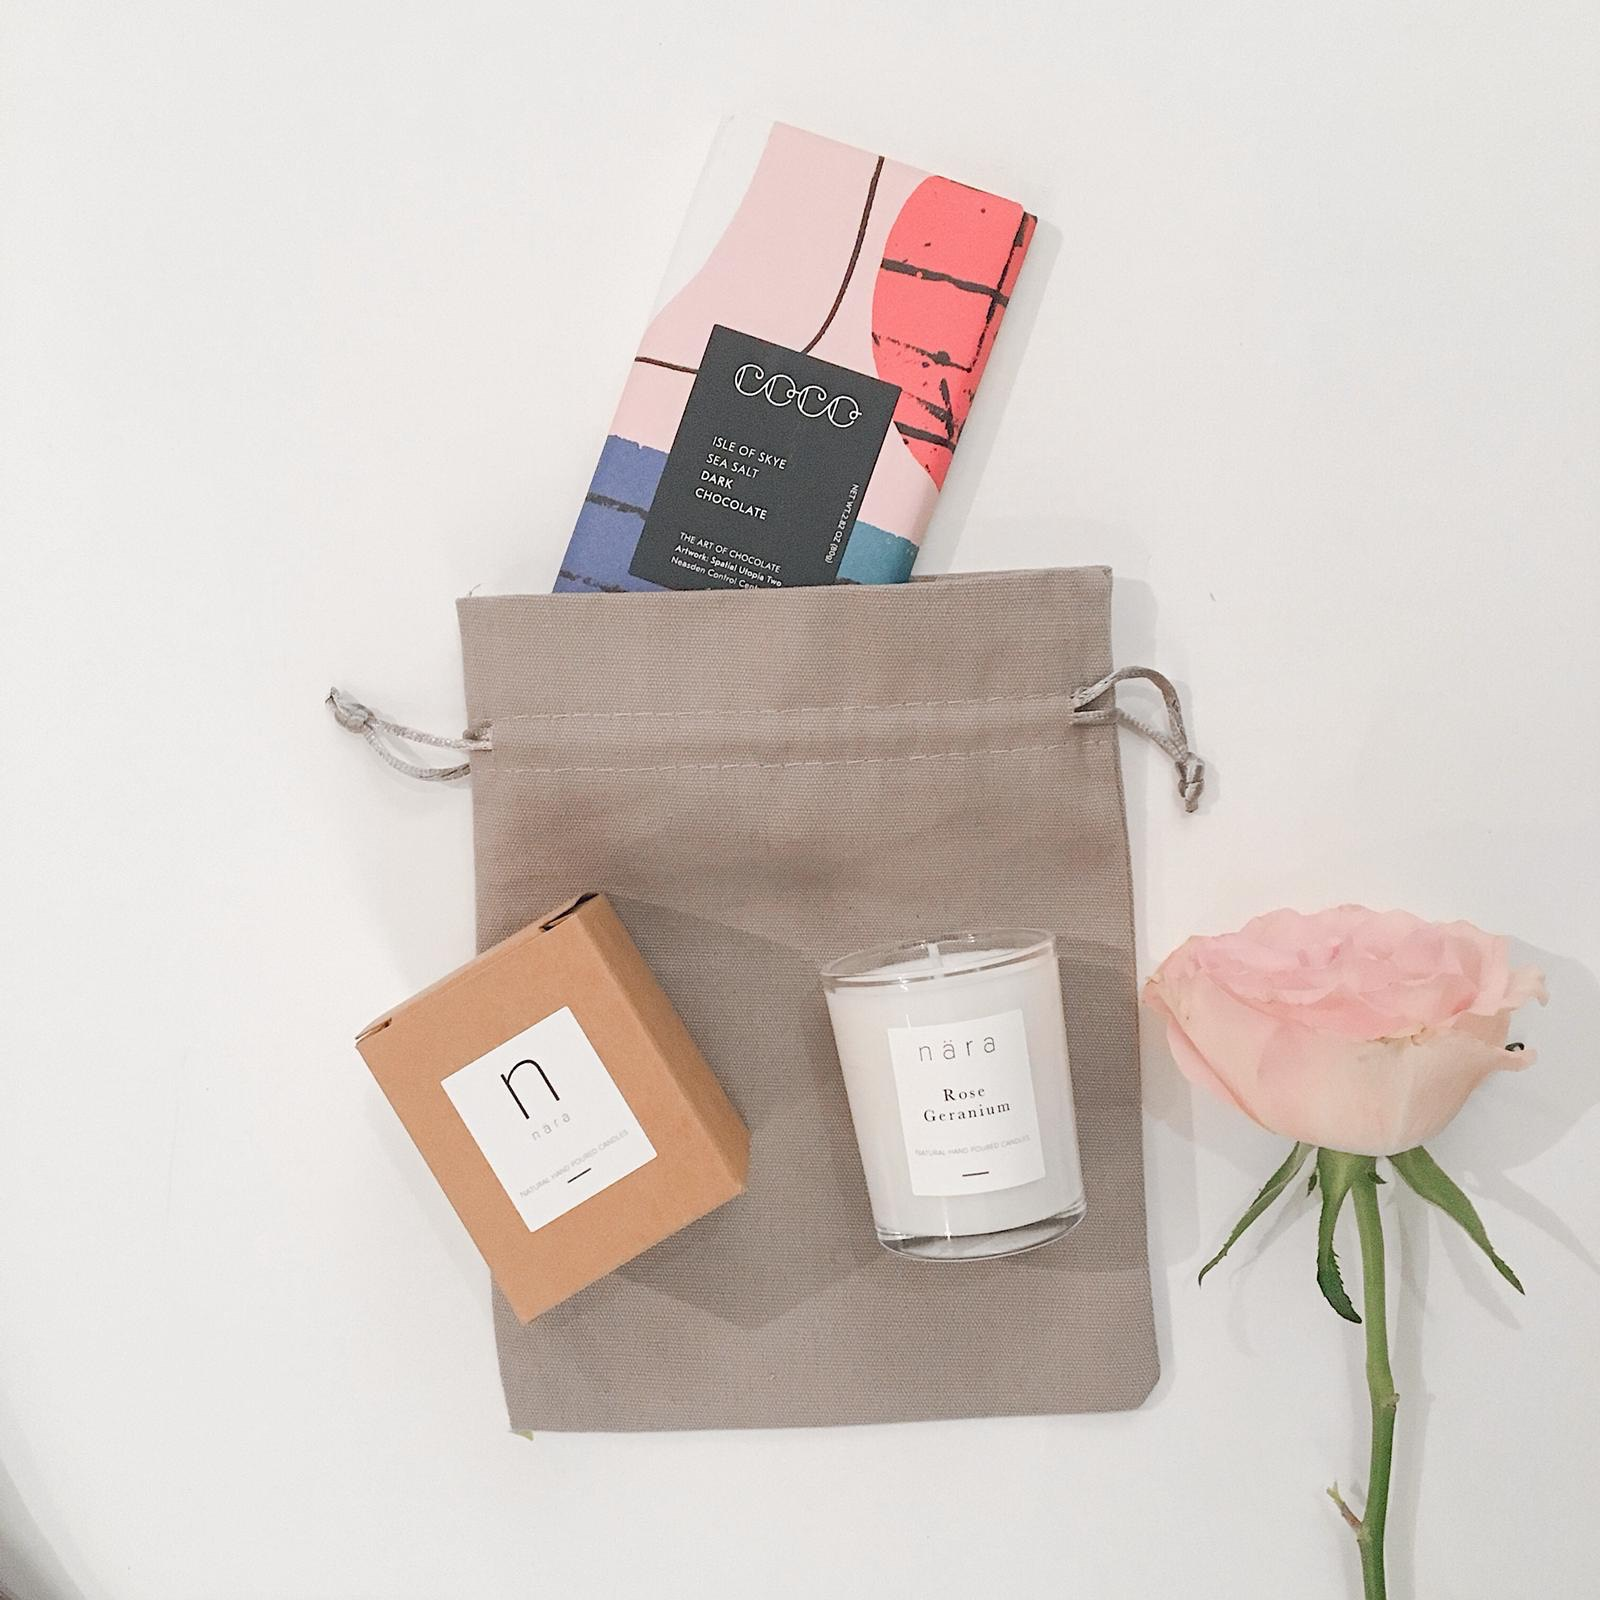 Just Because £13.50 - Sweet and thoughtful, this gift is bound to make your Valentine smile with a Rose Geranium votive candle, with a botanical scent reminiscent of a spa day and vegan COCO Chocolatier Isle of Skye Salt chocolate, presented in a keepsake pouch.